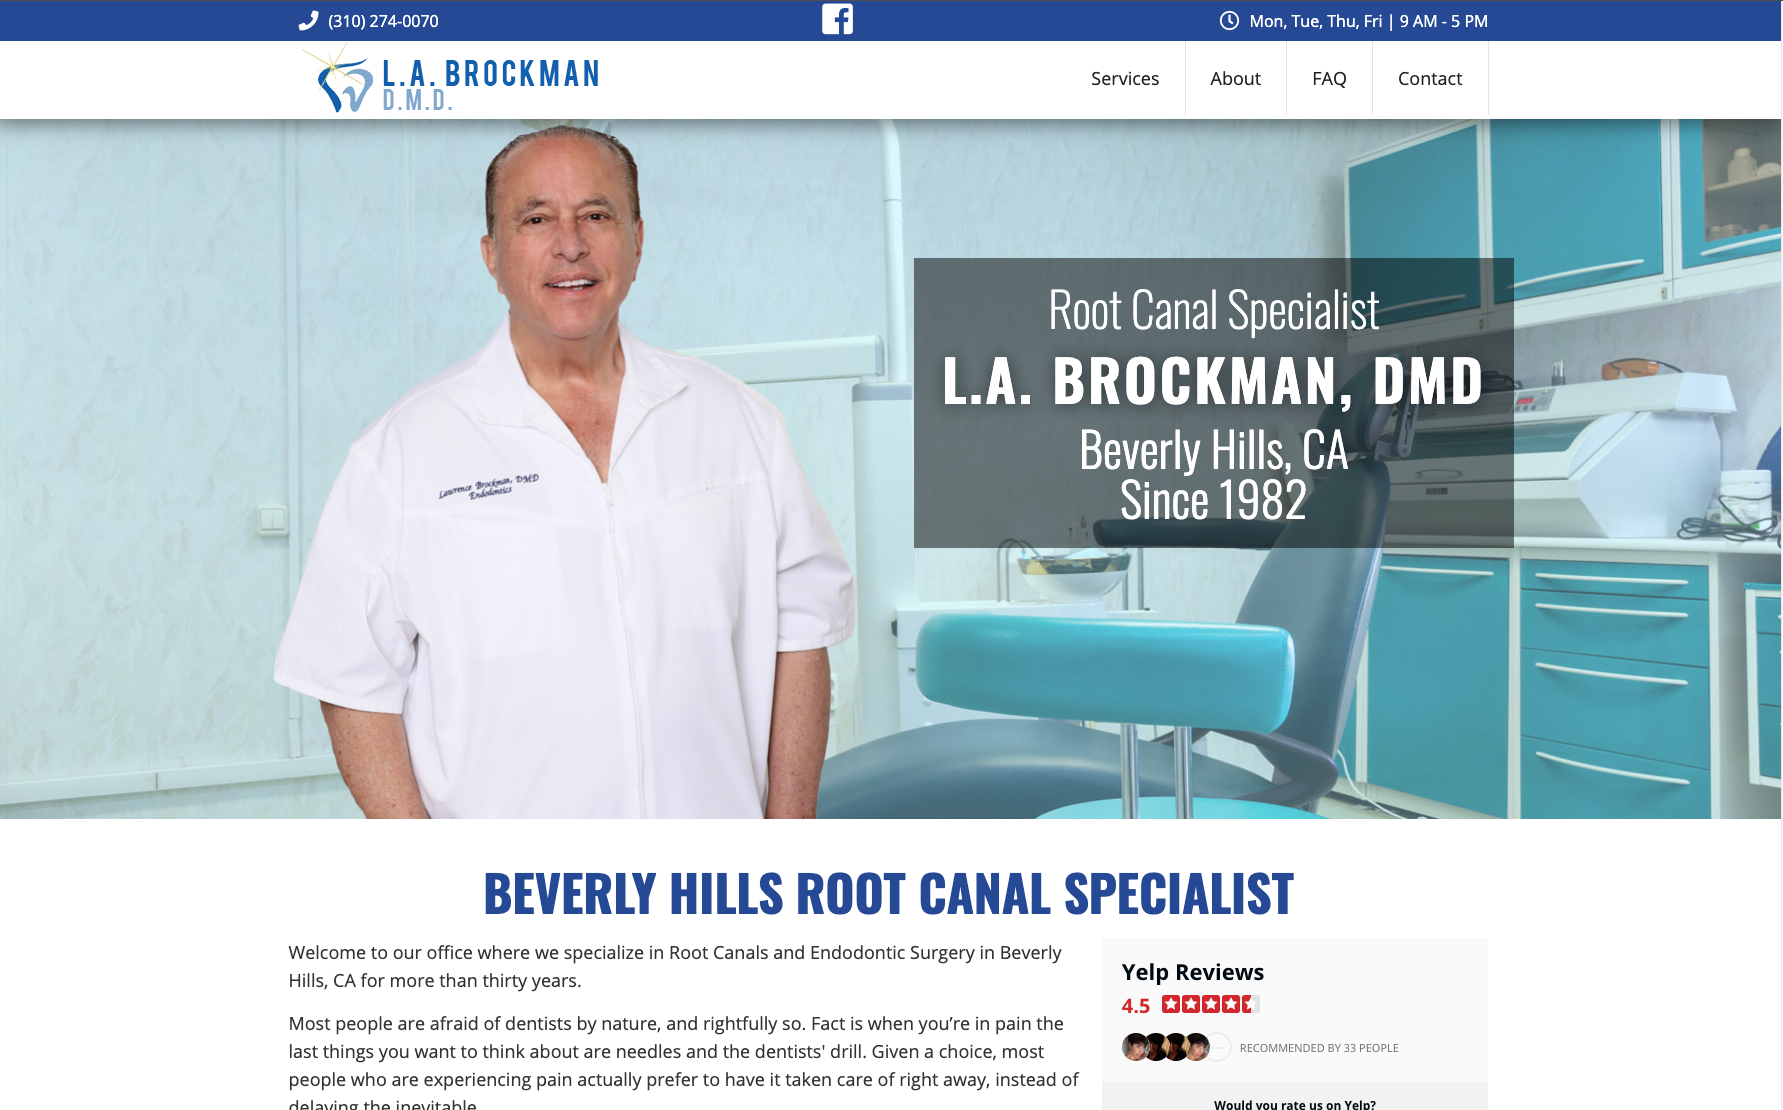 Brockman DMD website across screens